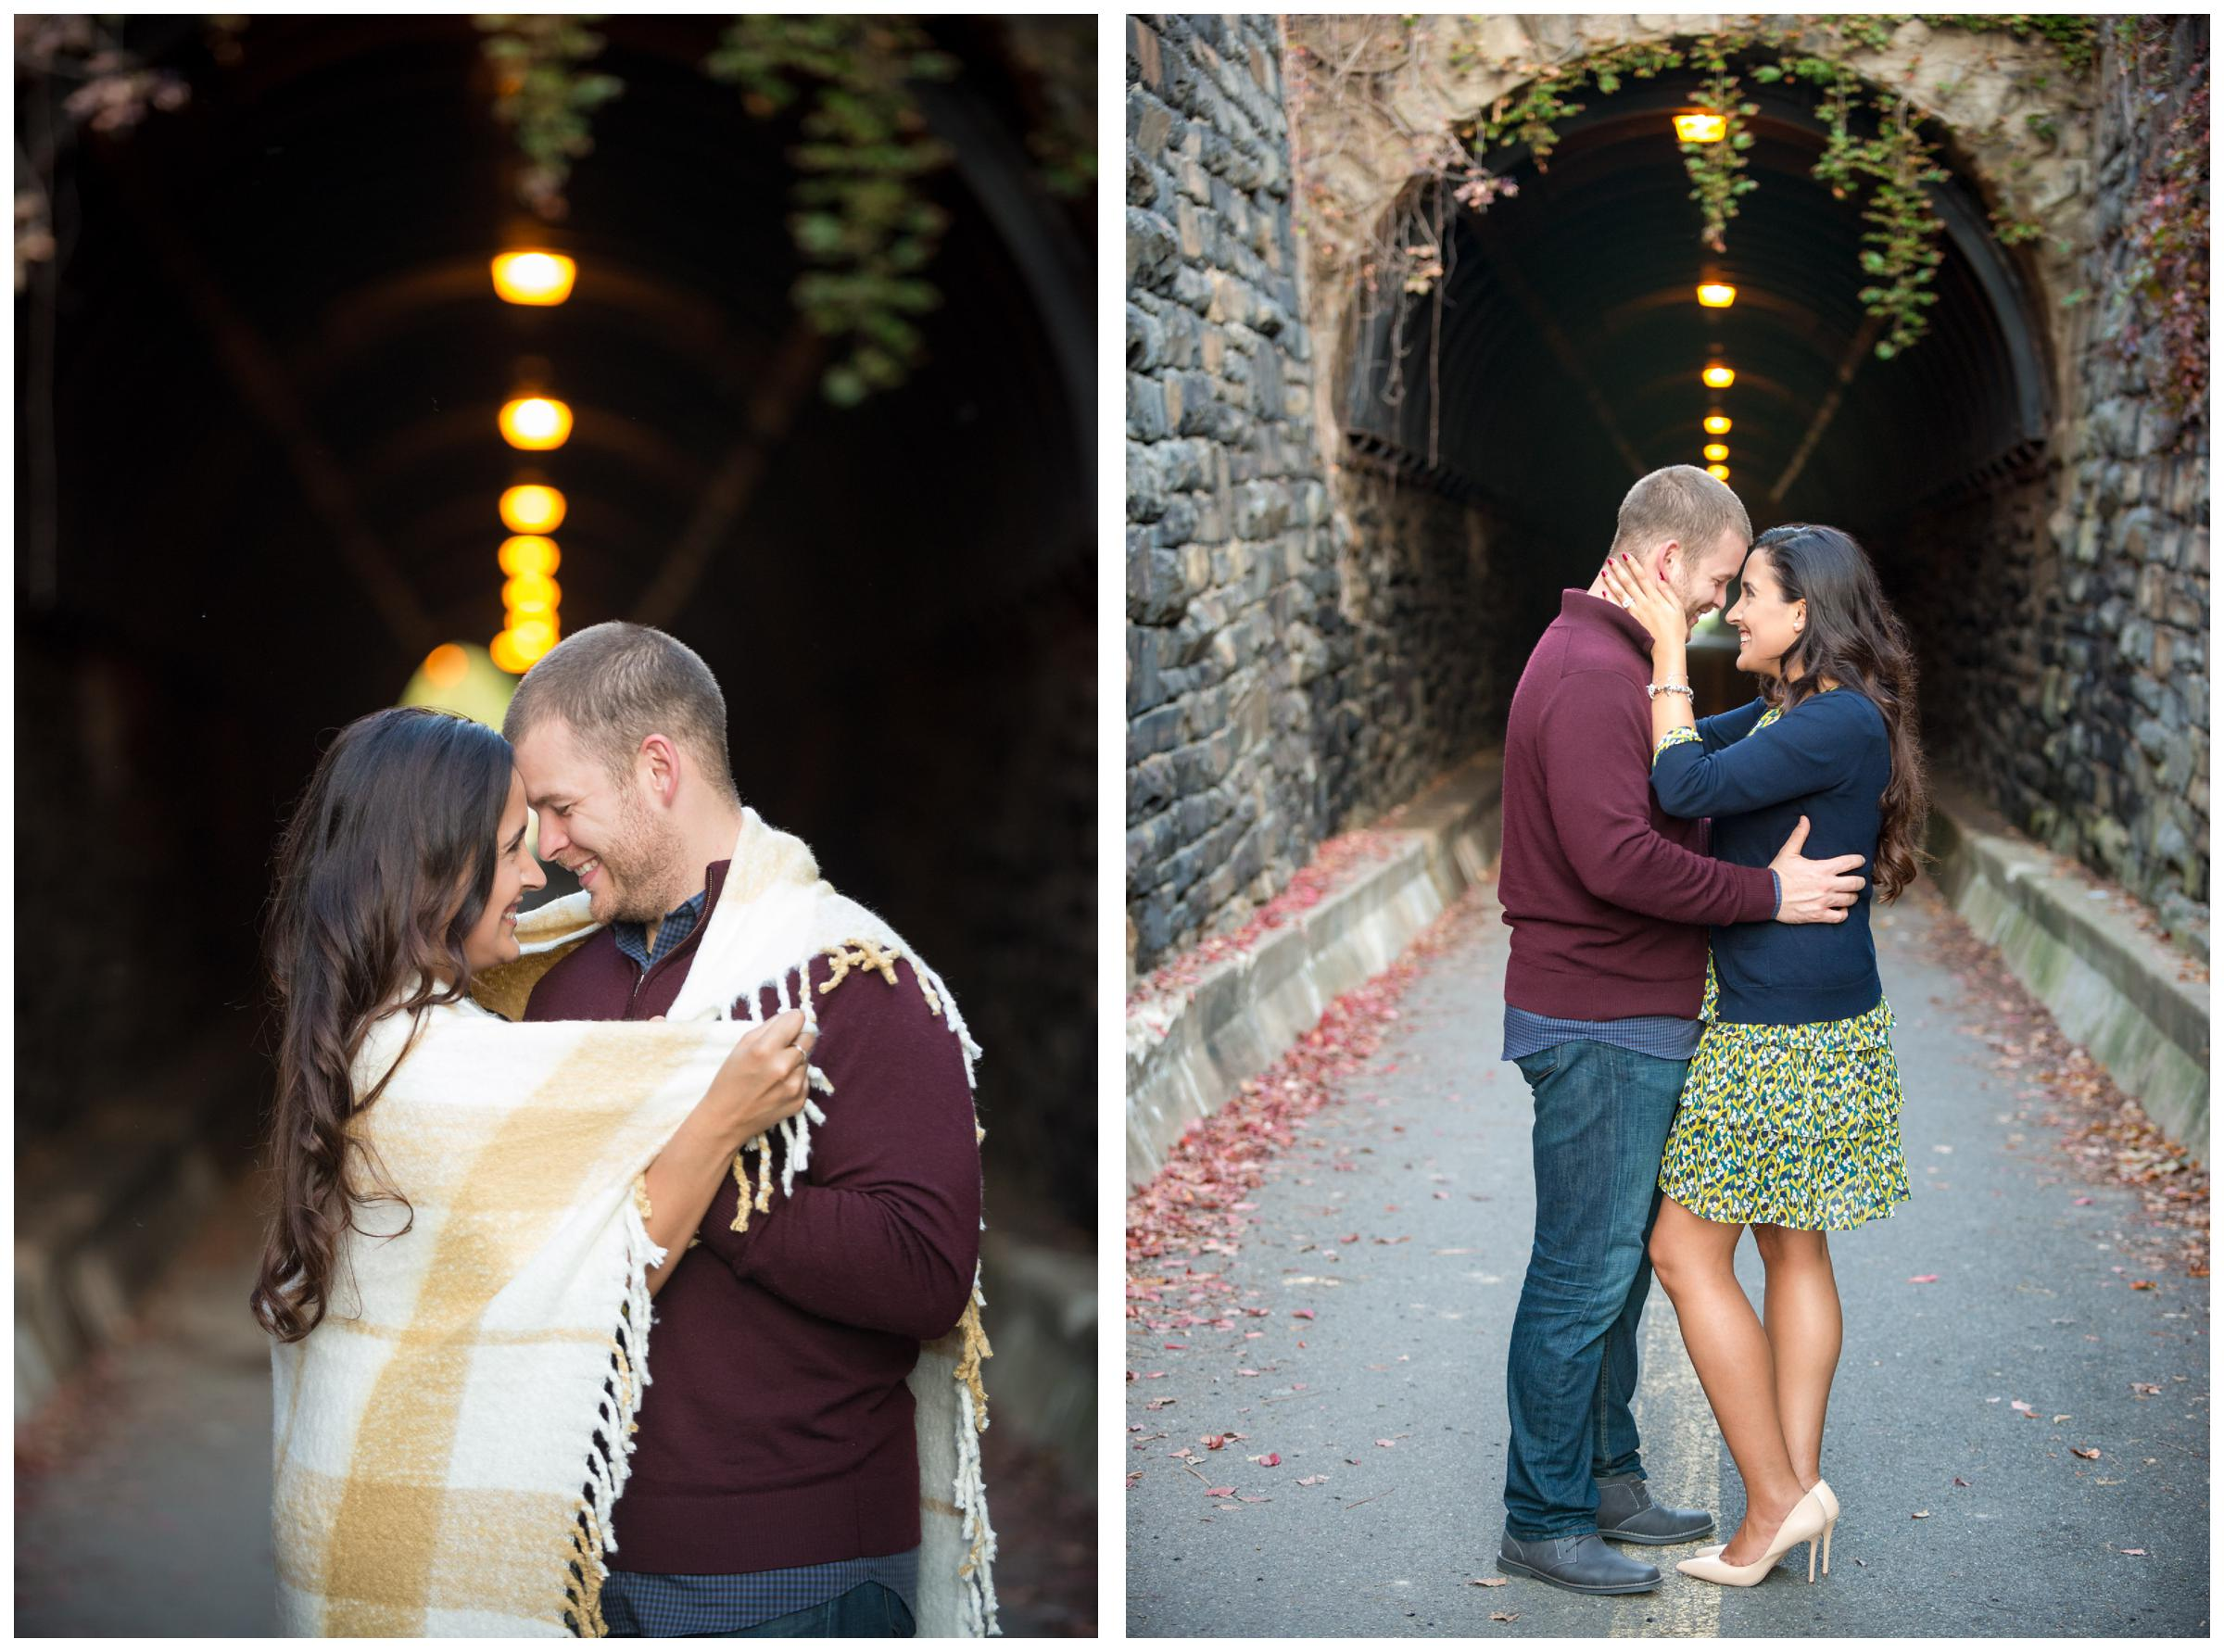 engagement session at Wilkes Street pedestrian tunnel in Old Town Alexandria, Virginia